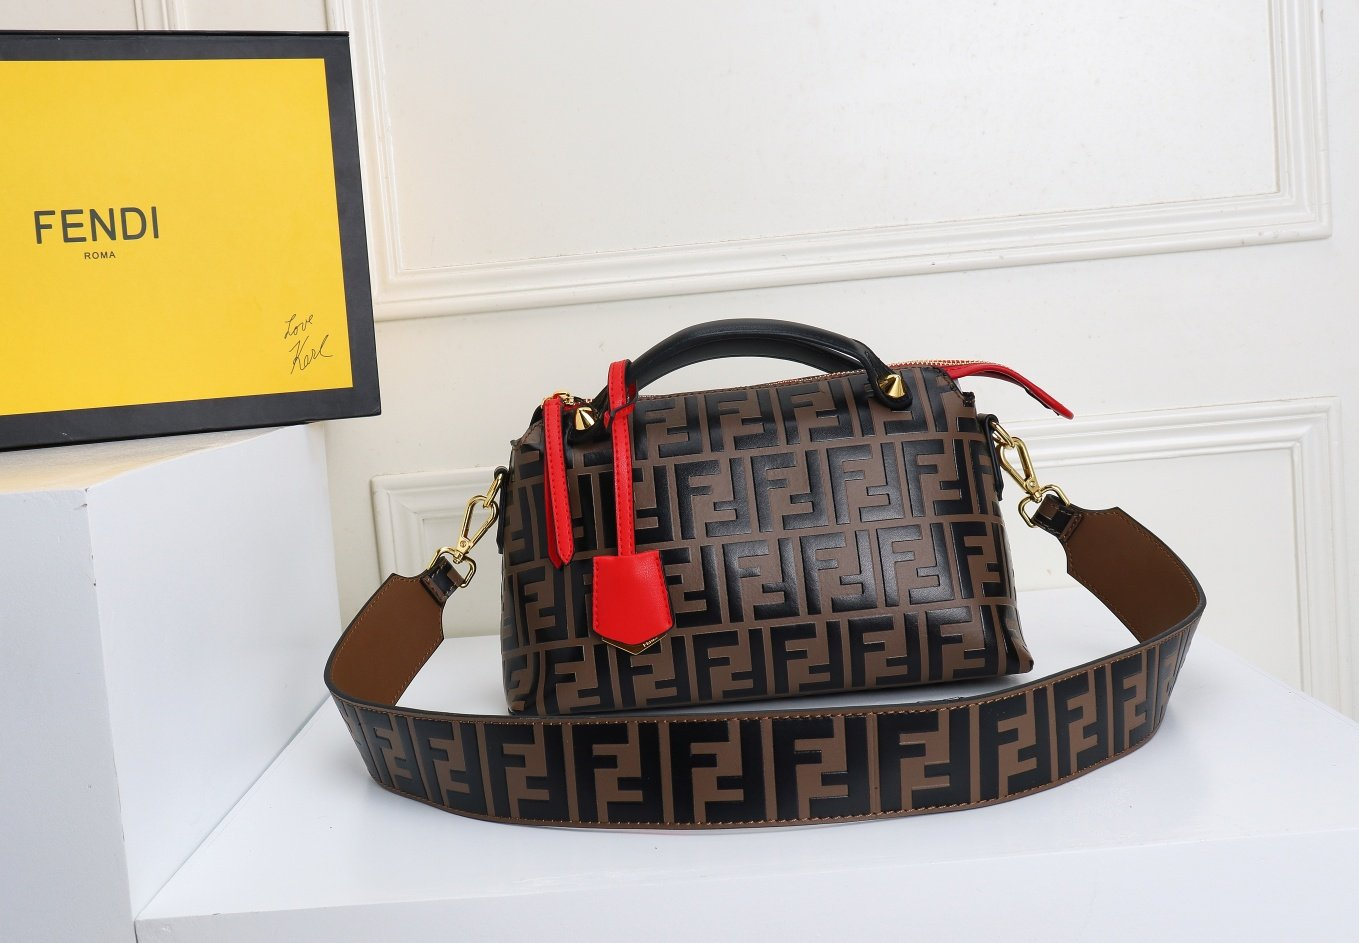 Image of FENDI WOMEN'S LEATHER BY THE WAY HANDBAG INCLINED SHOULDER BAG